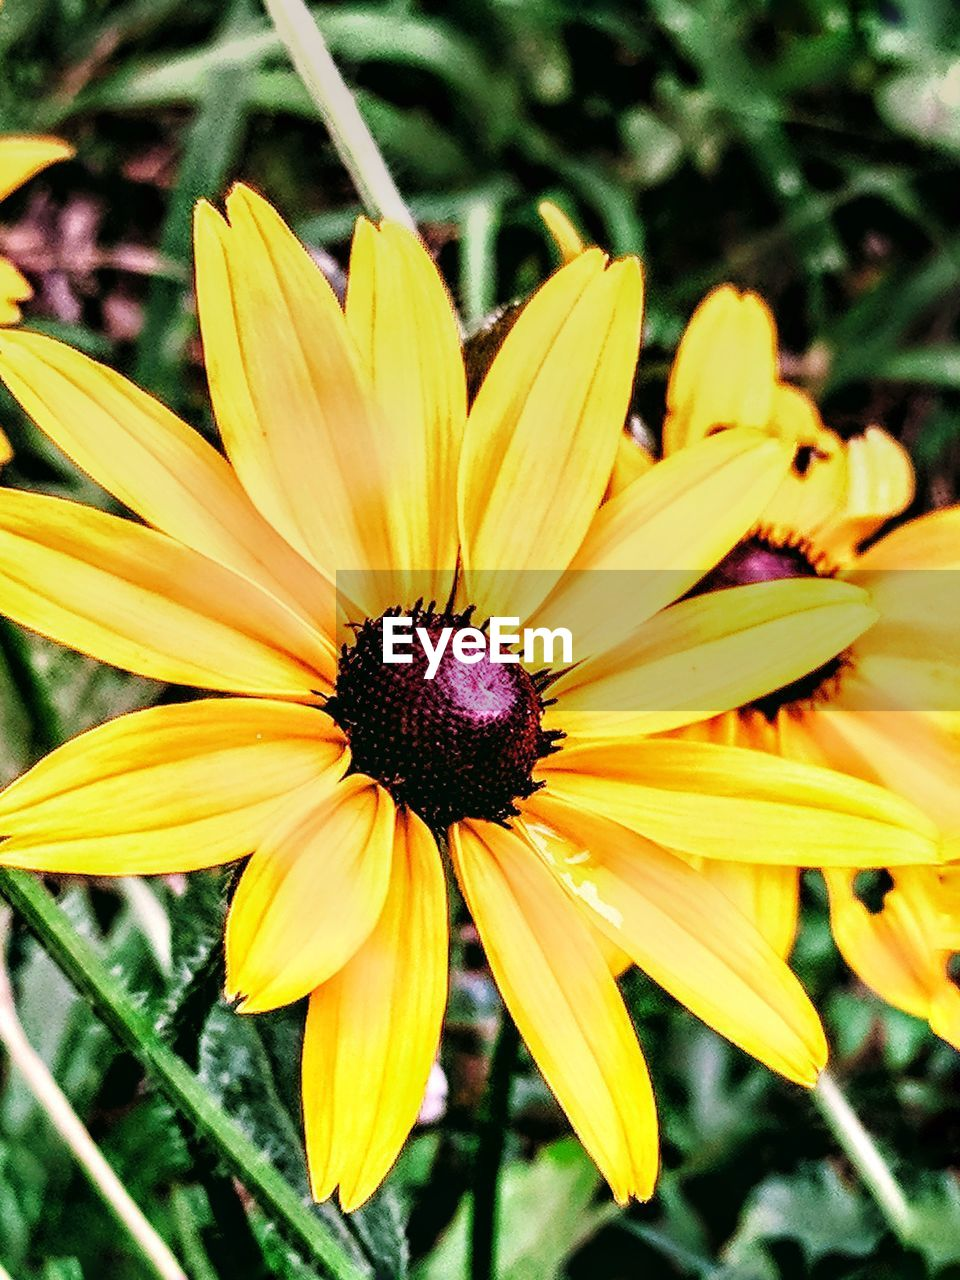 flower, yellow, petal, fragility, flower head, beauty in nature, growth, nature, freshness, plant, blooming, black-eyed susan, pollen, no people, close-up, day, outdoors, focus on foreground